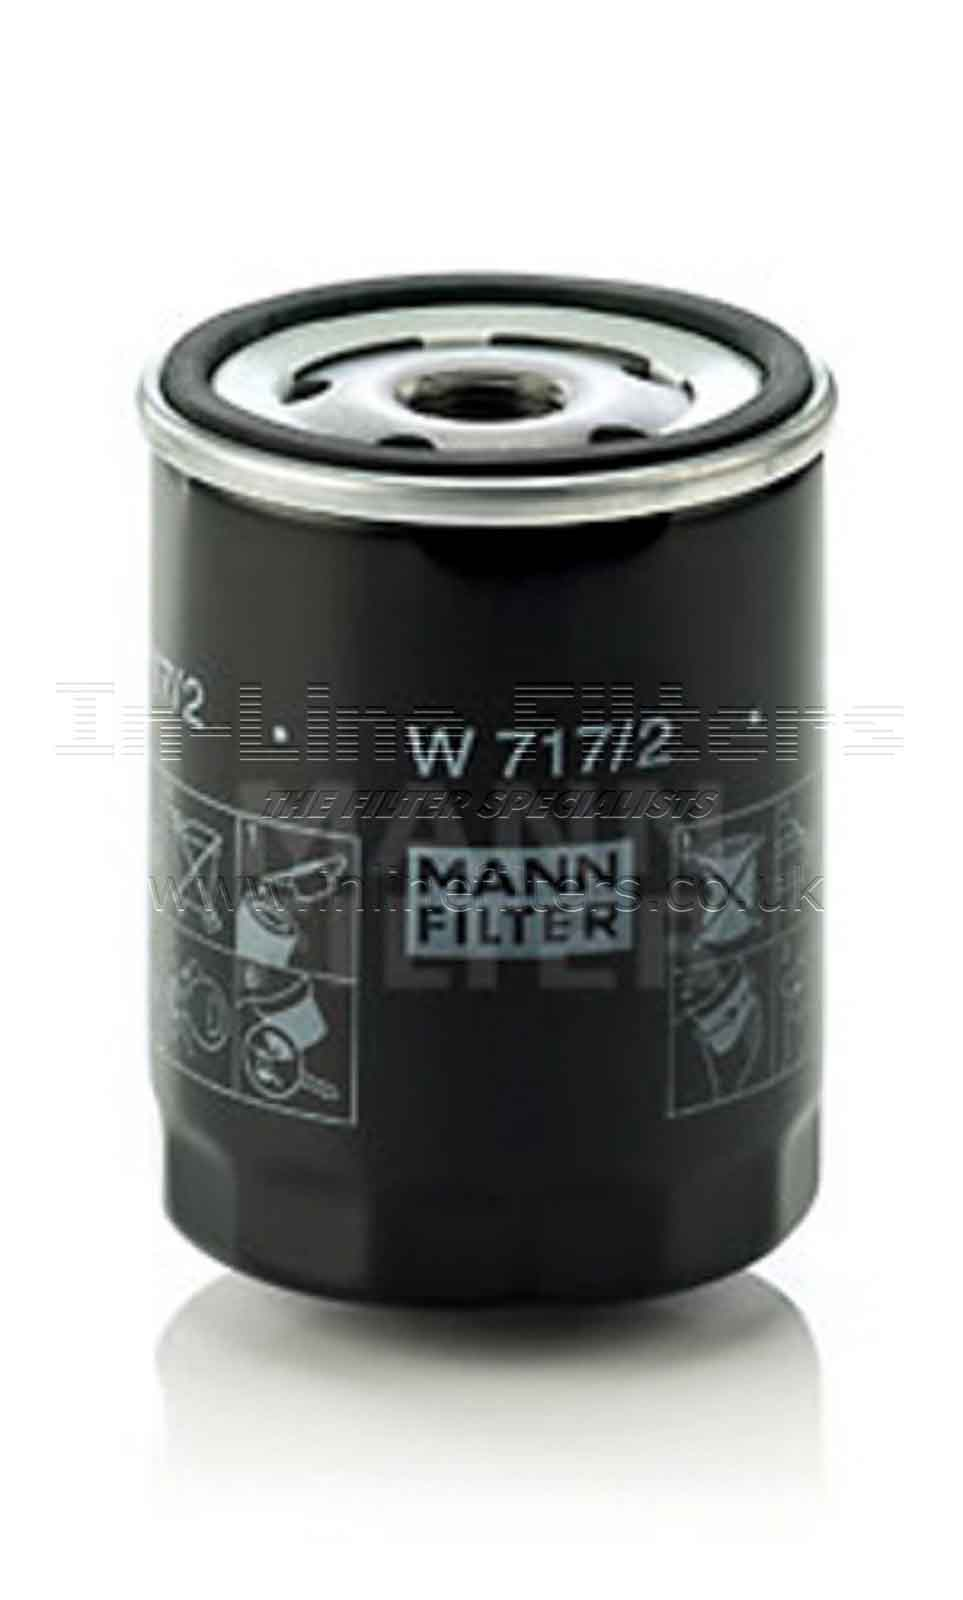 FMH-W717-2 FILTER-Lube(Brand Specific-Mann W717/2) - Click Image to Close